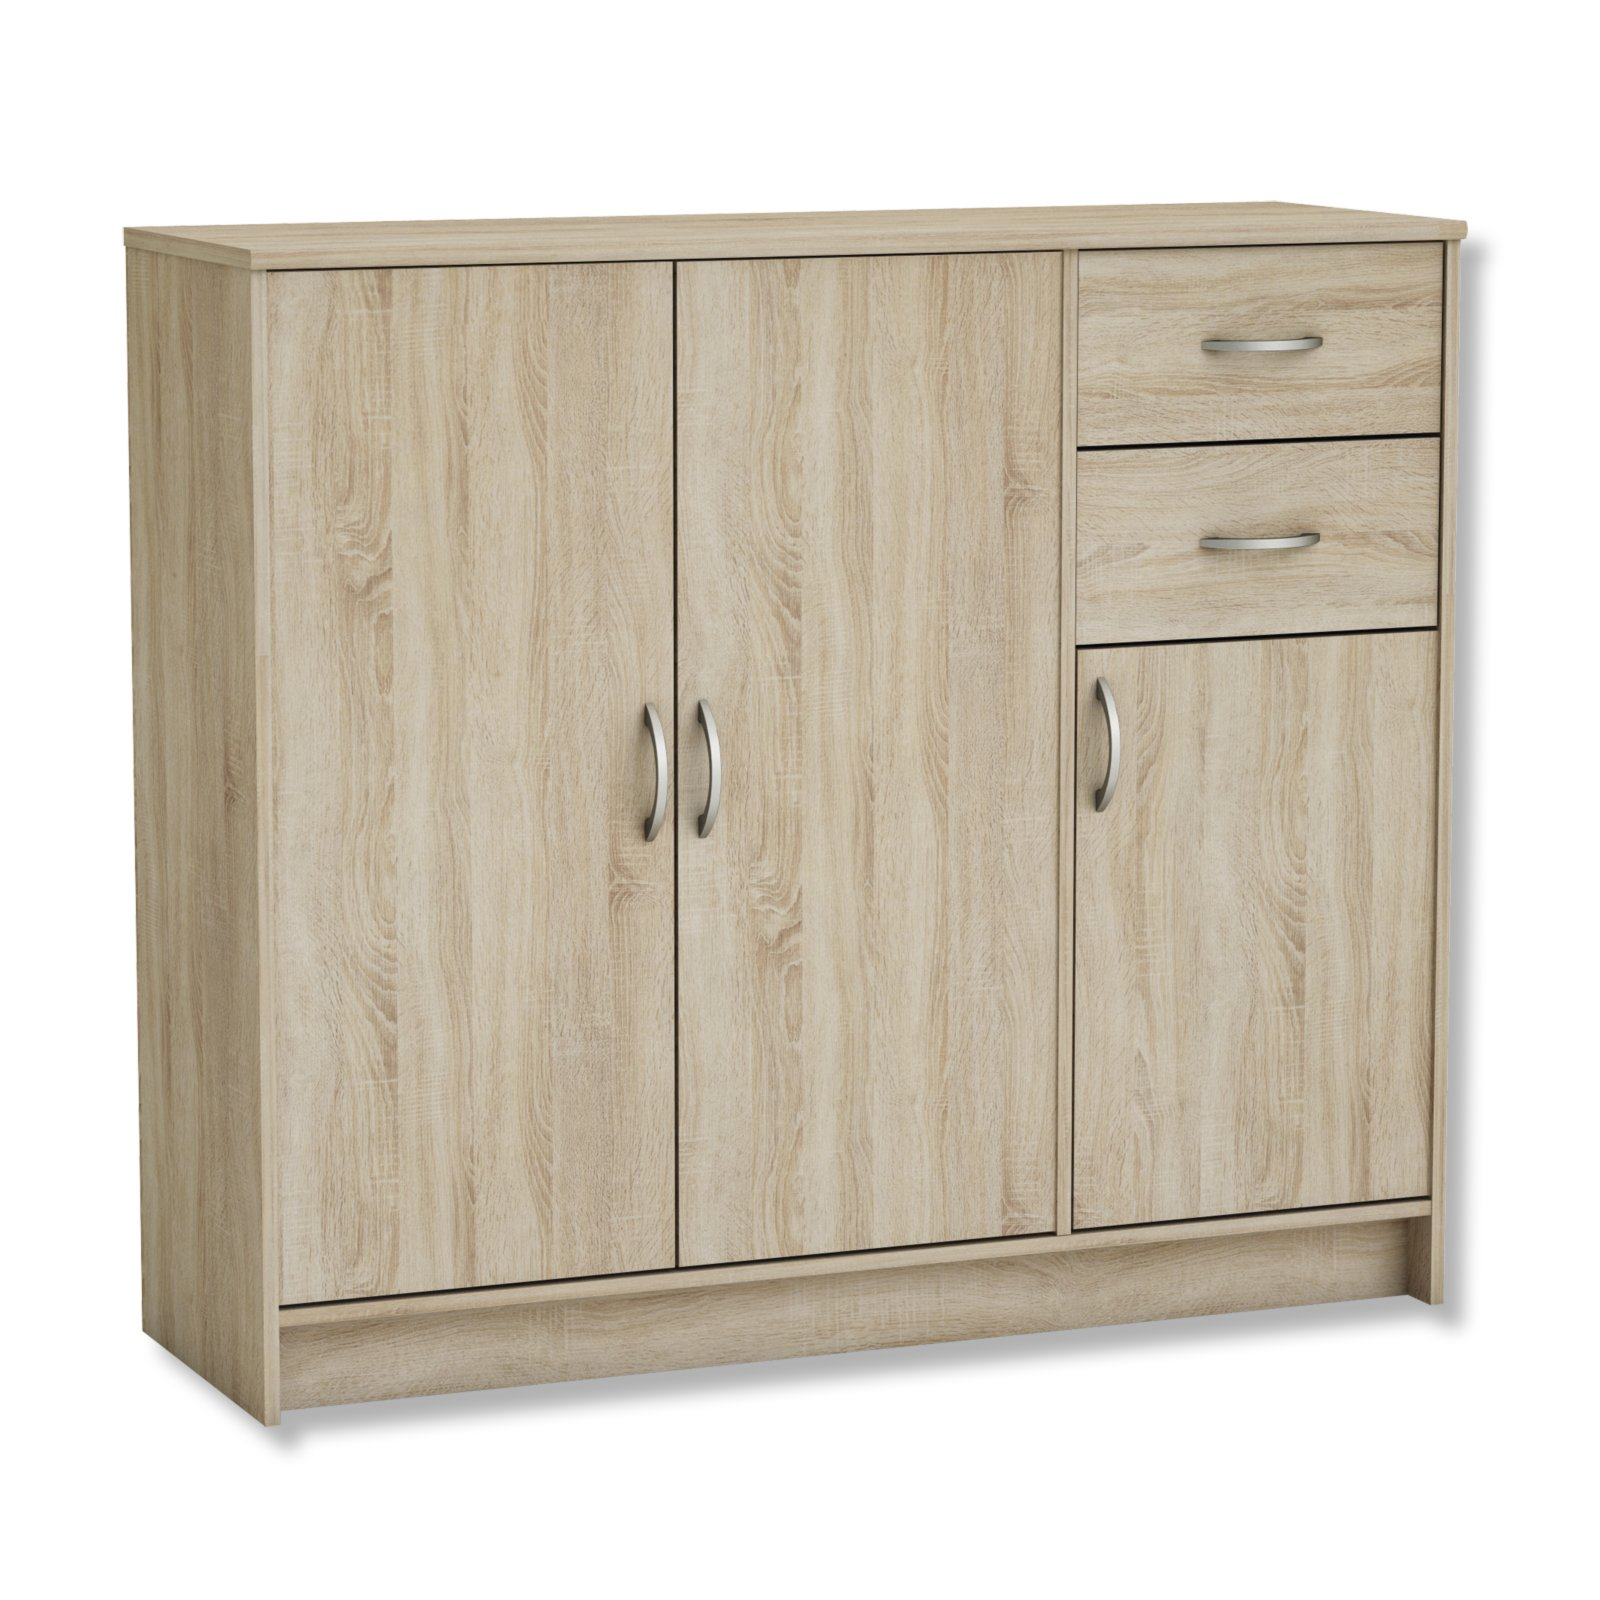 Highboard Herkules Wildeiche Kommode. Architektur Eiche Massiv Kommode